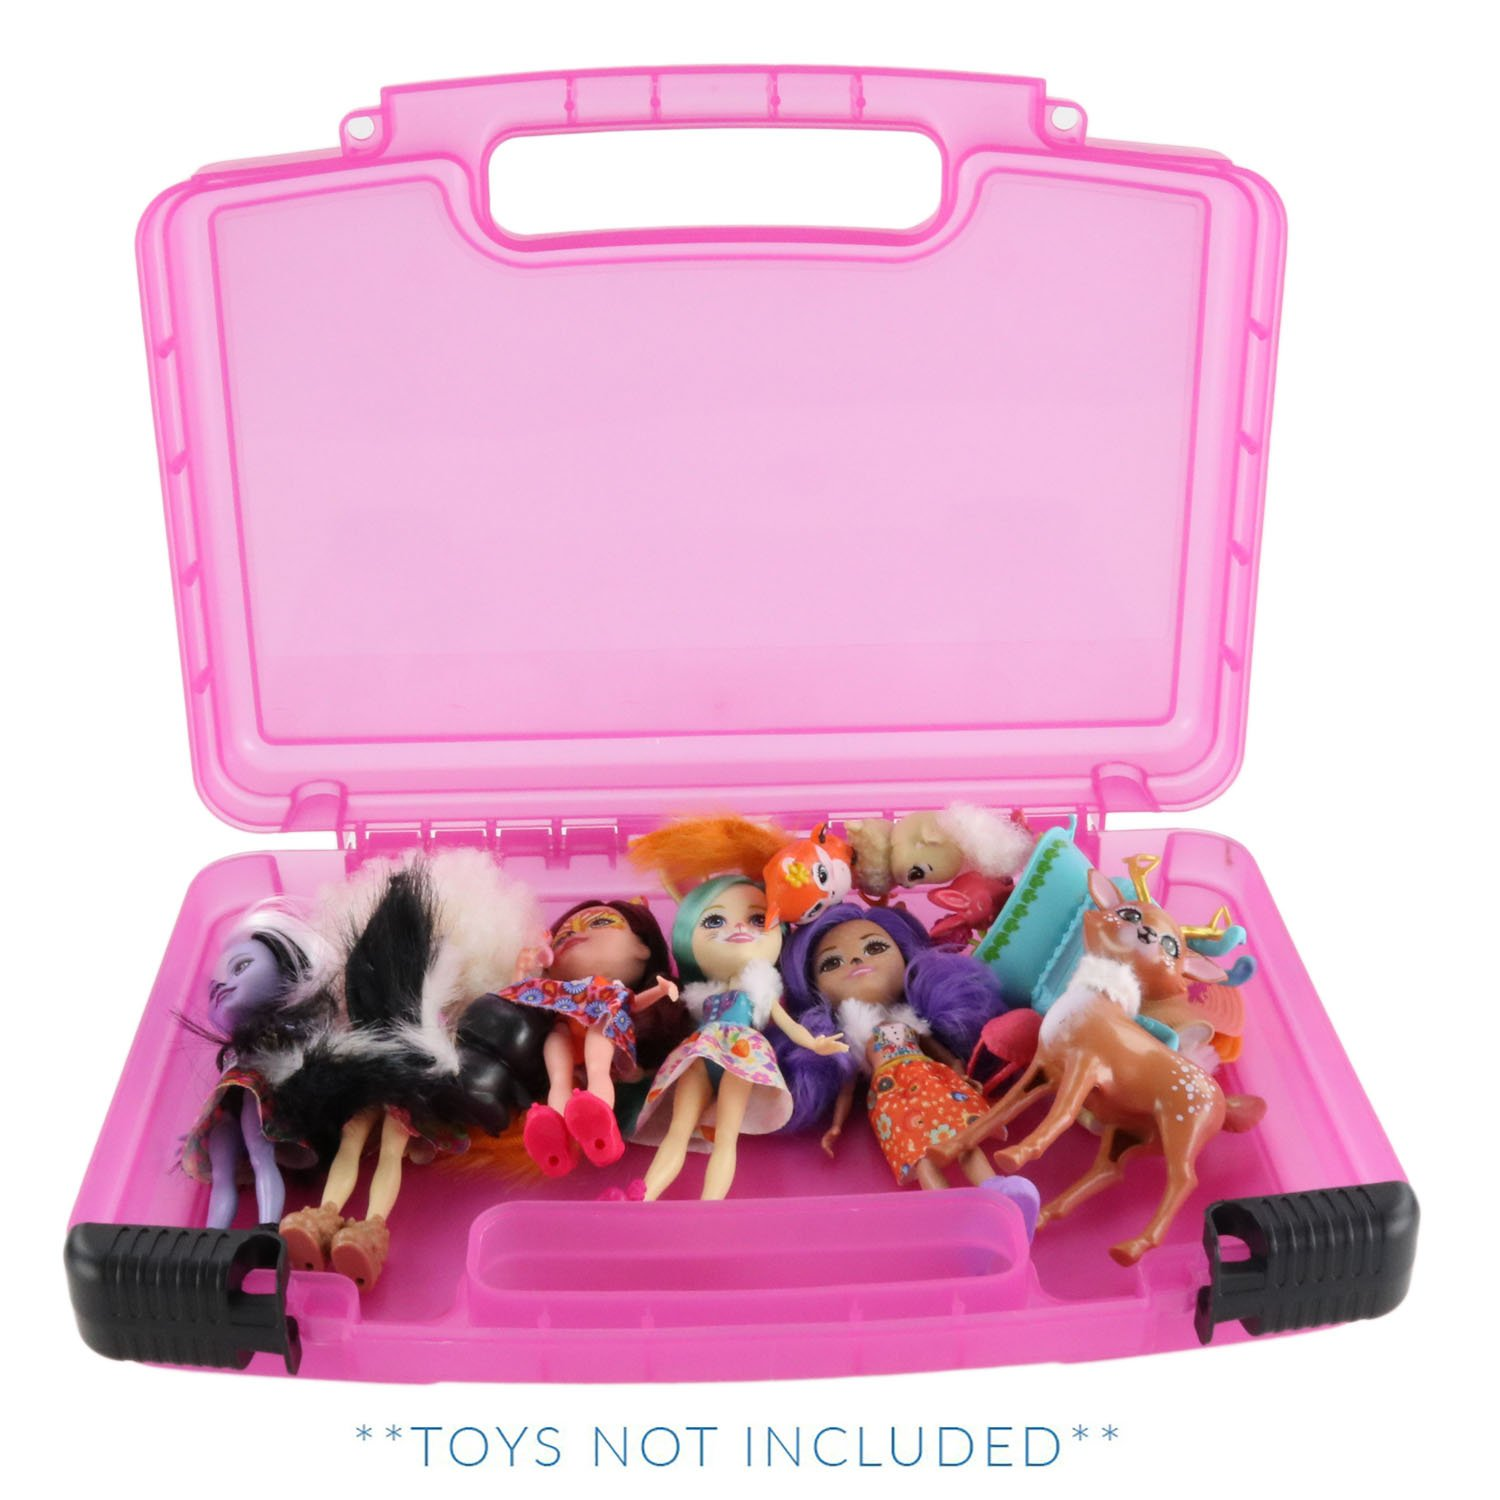 Enchantimals Case, Toy Storage Carrying Box. Figures Playset Organizer. Accessories for Kids by LMB Life Made Better LMB306